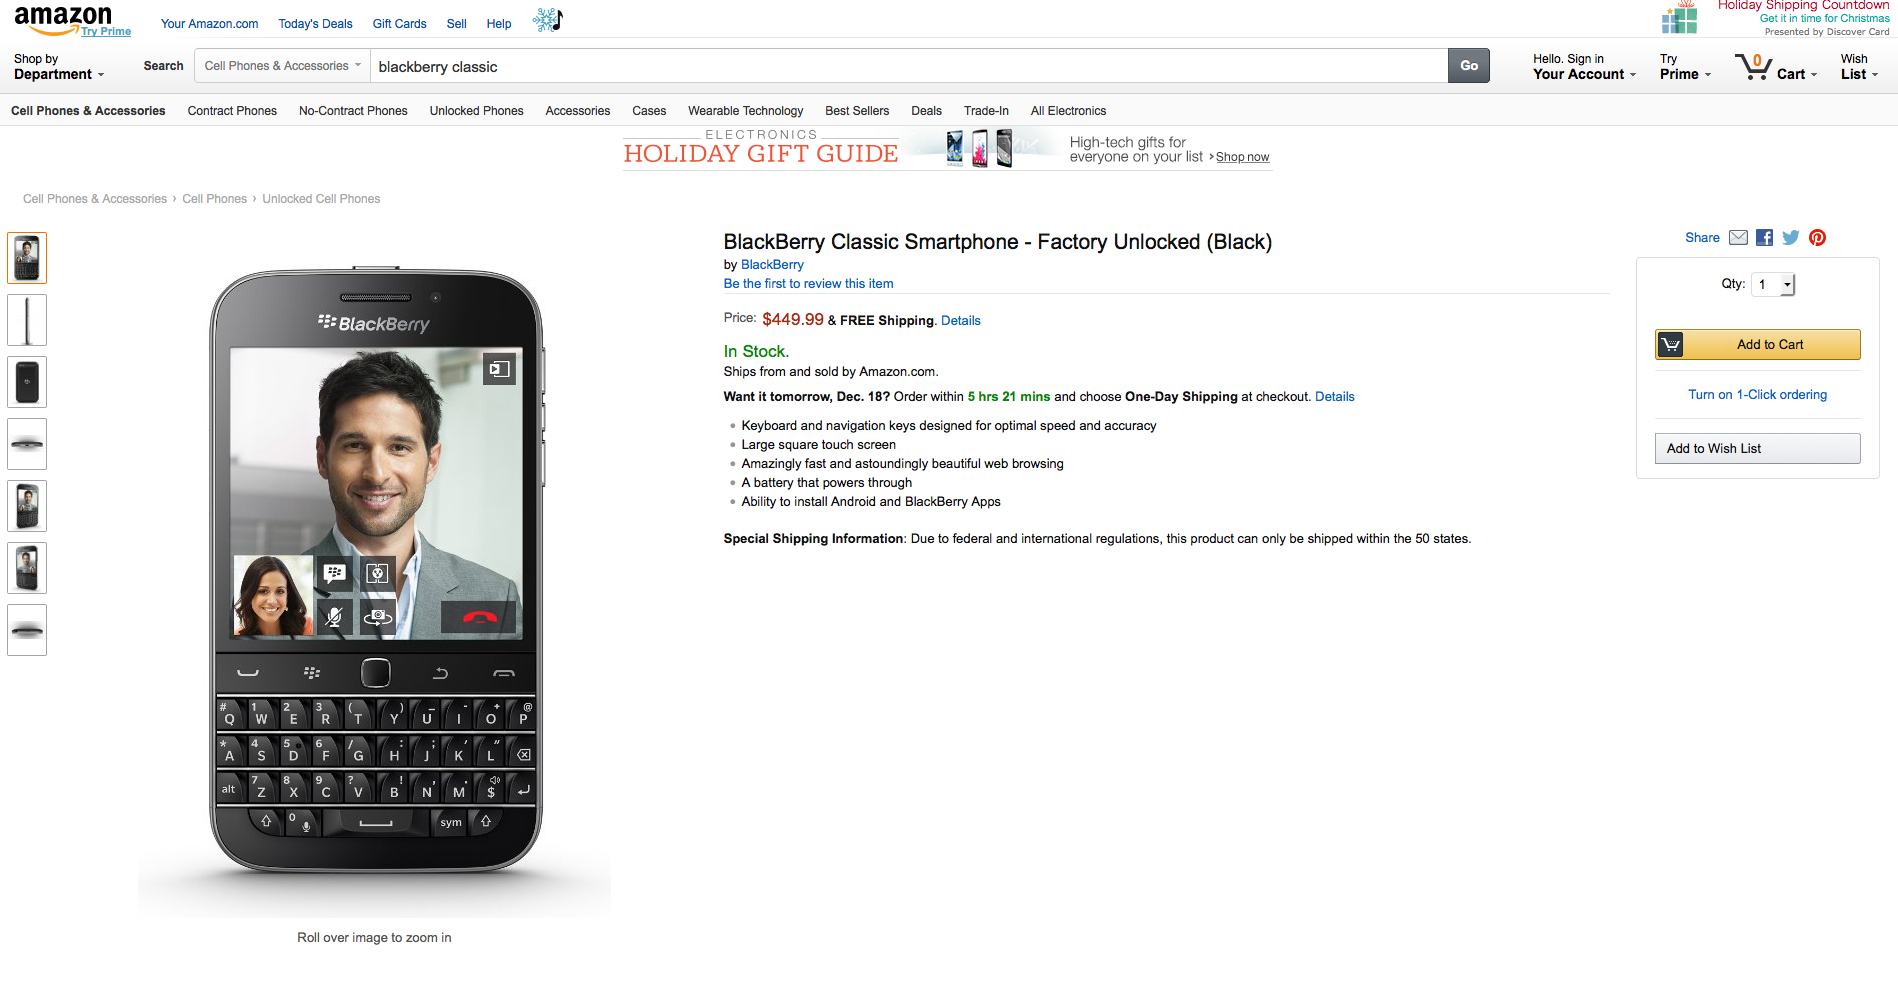 BlackBerry_Classic_Amazon-com_Dec-18.png